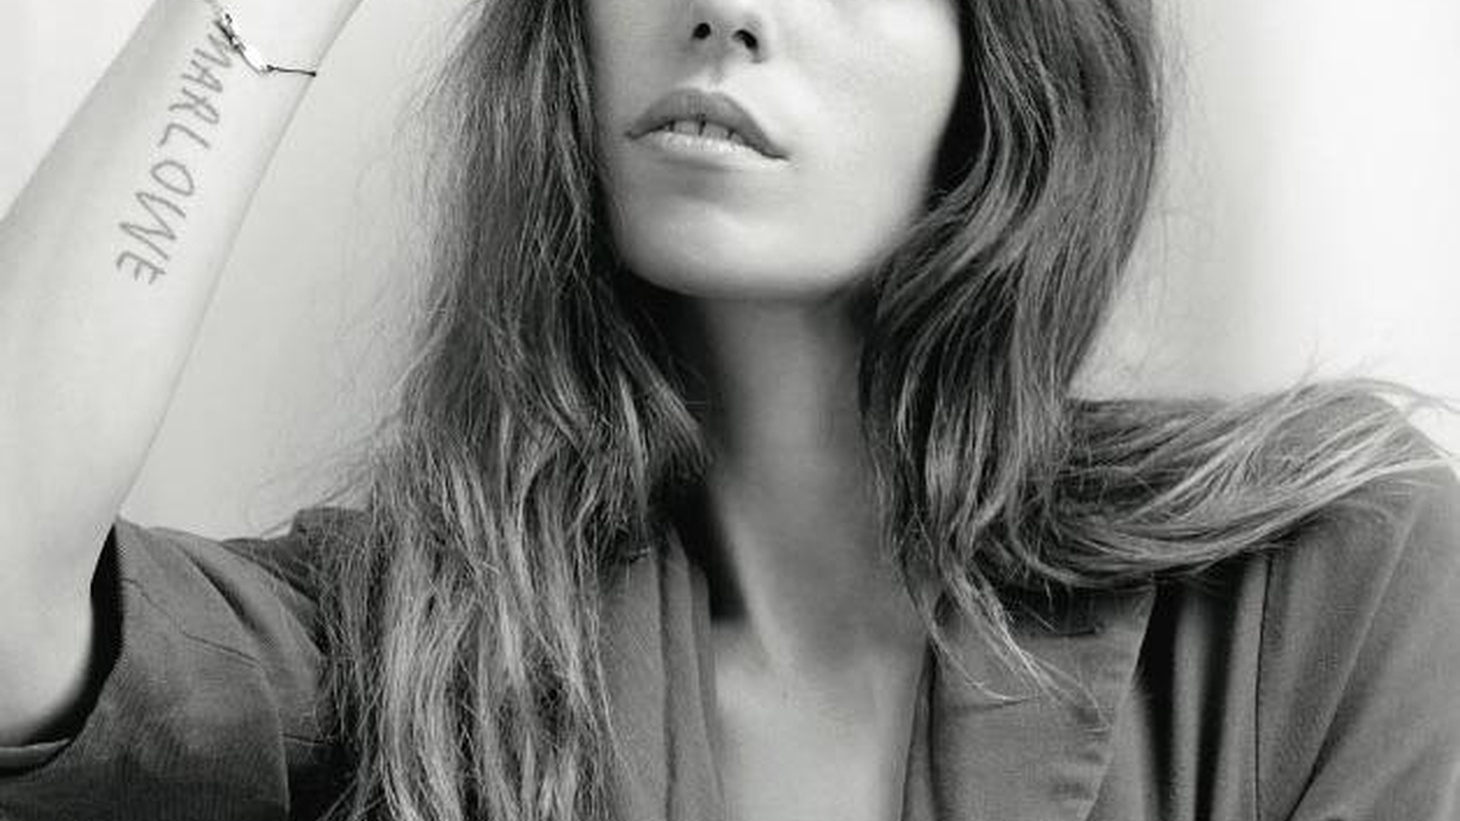 The daughter of French singer and actress Jane Birken and half-sister to Charlotte Gainsbourg, Lou Doillon is an actress and model turned singer.